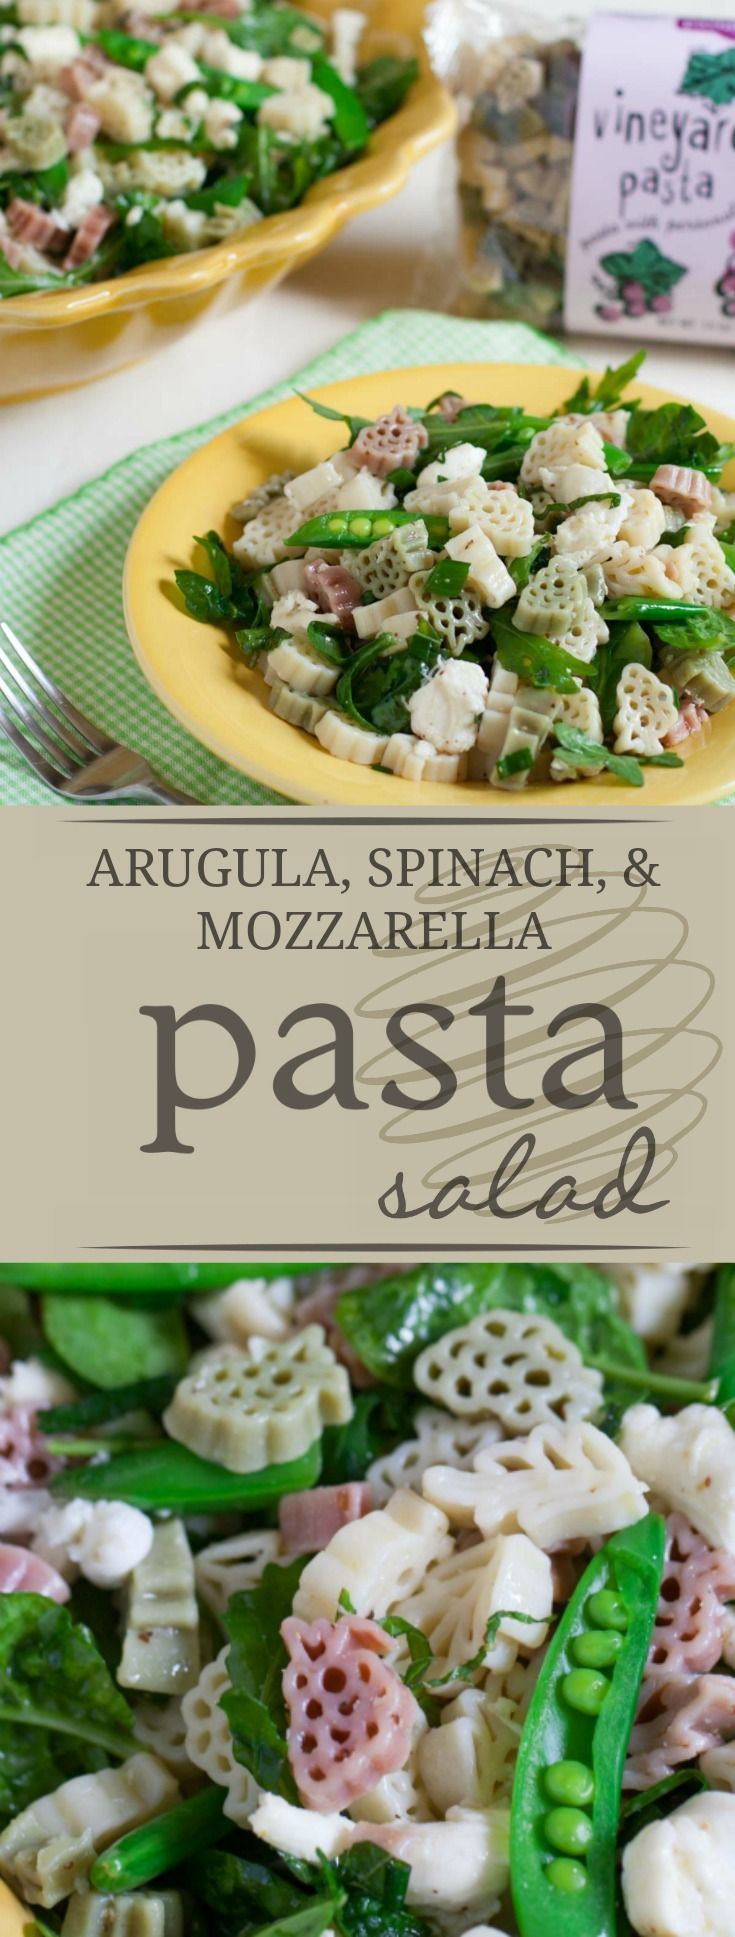 Arugula, Spinach, and Mozzarella Pasta Salad | Tasty and nutritious, this light pasta salad is the yummiest way to get in those greens! Perfect for family dinner! | http://WorldofPastabilities.com